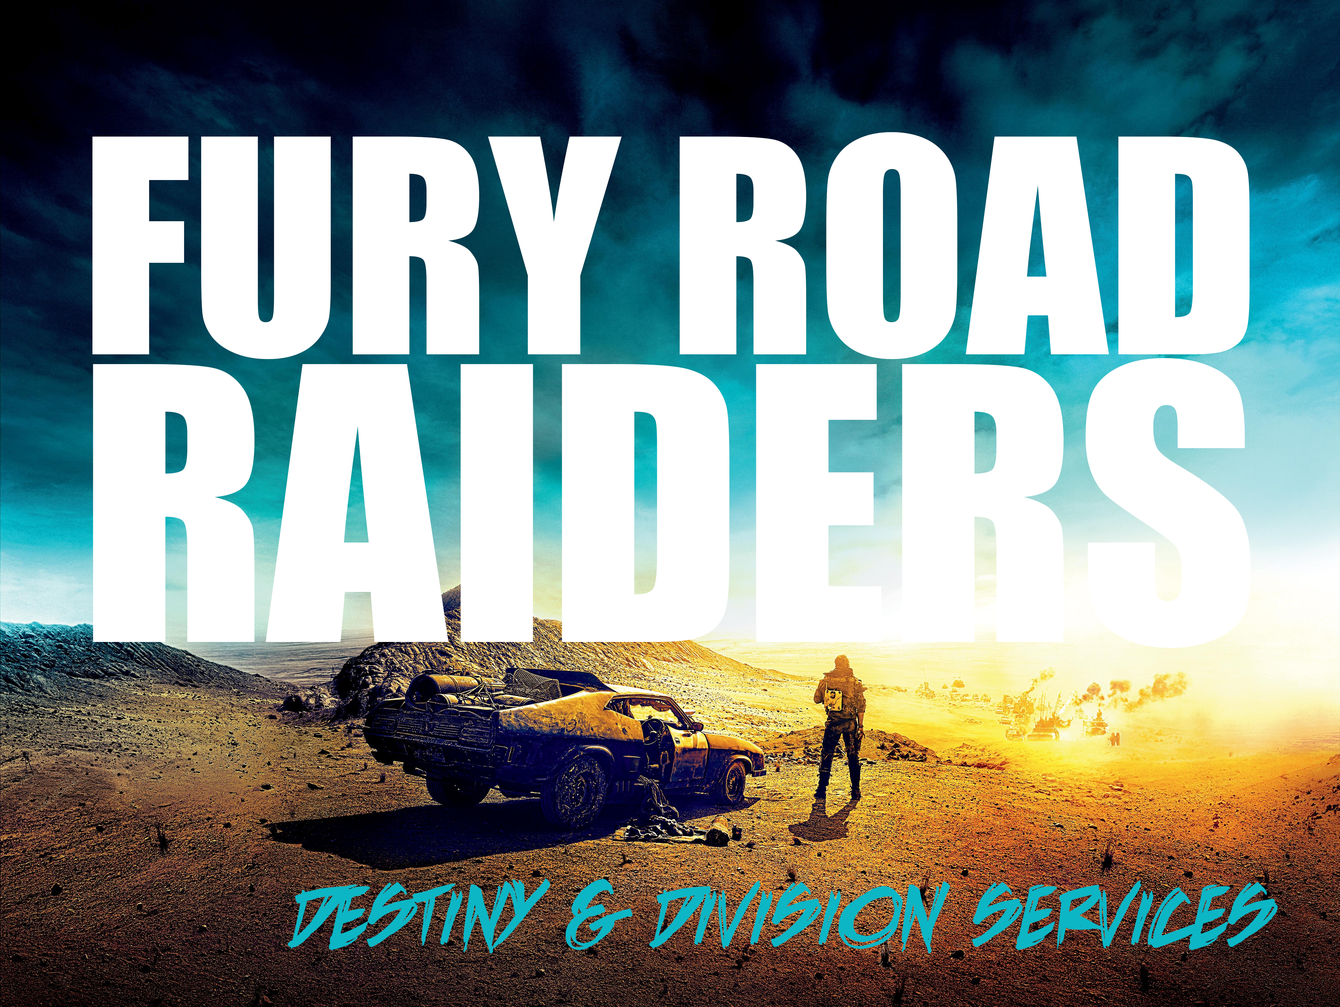 FURY ROAD RAIDERS